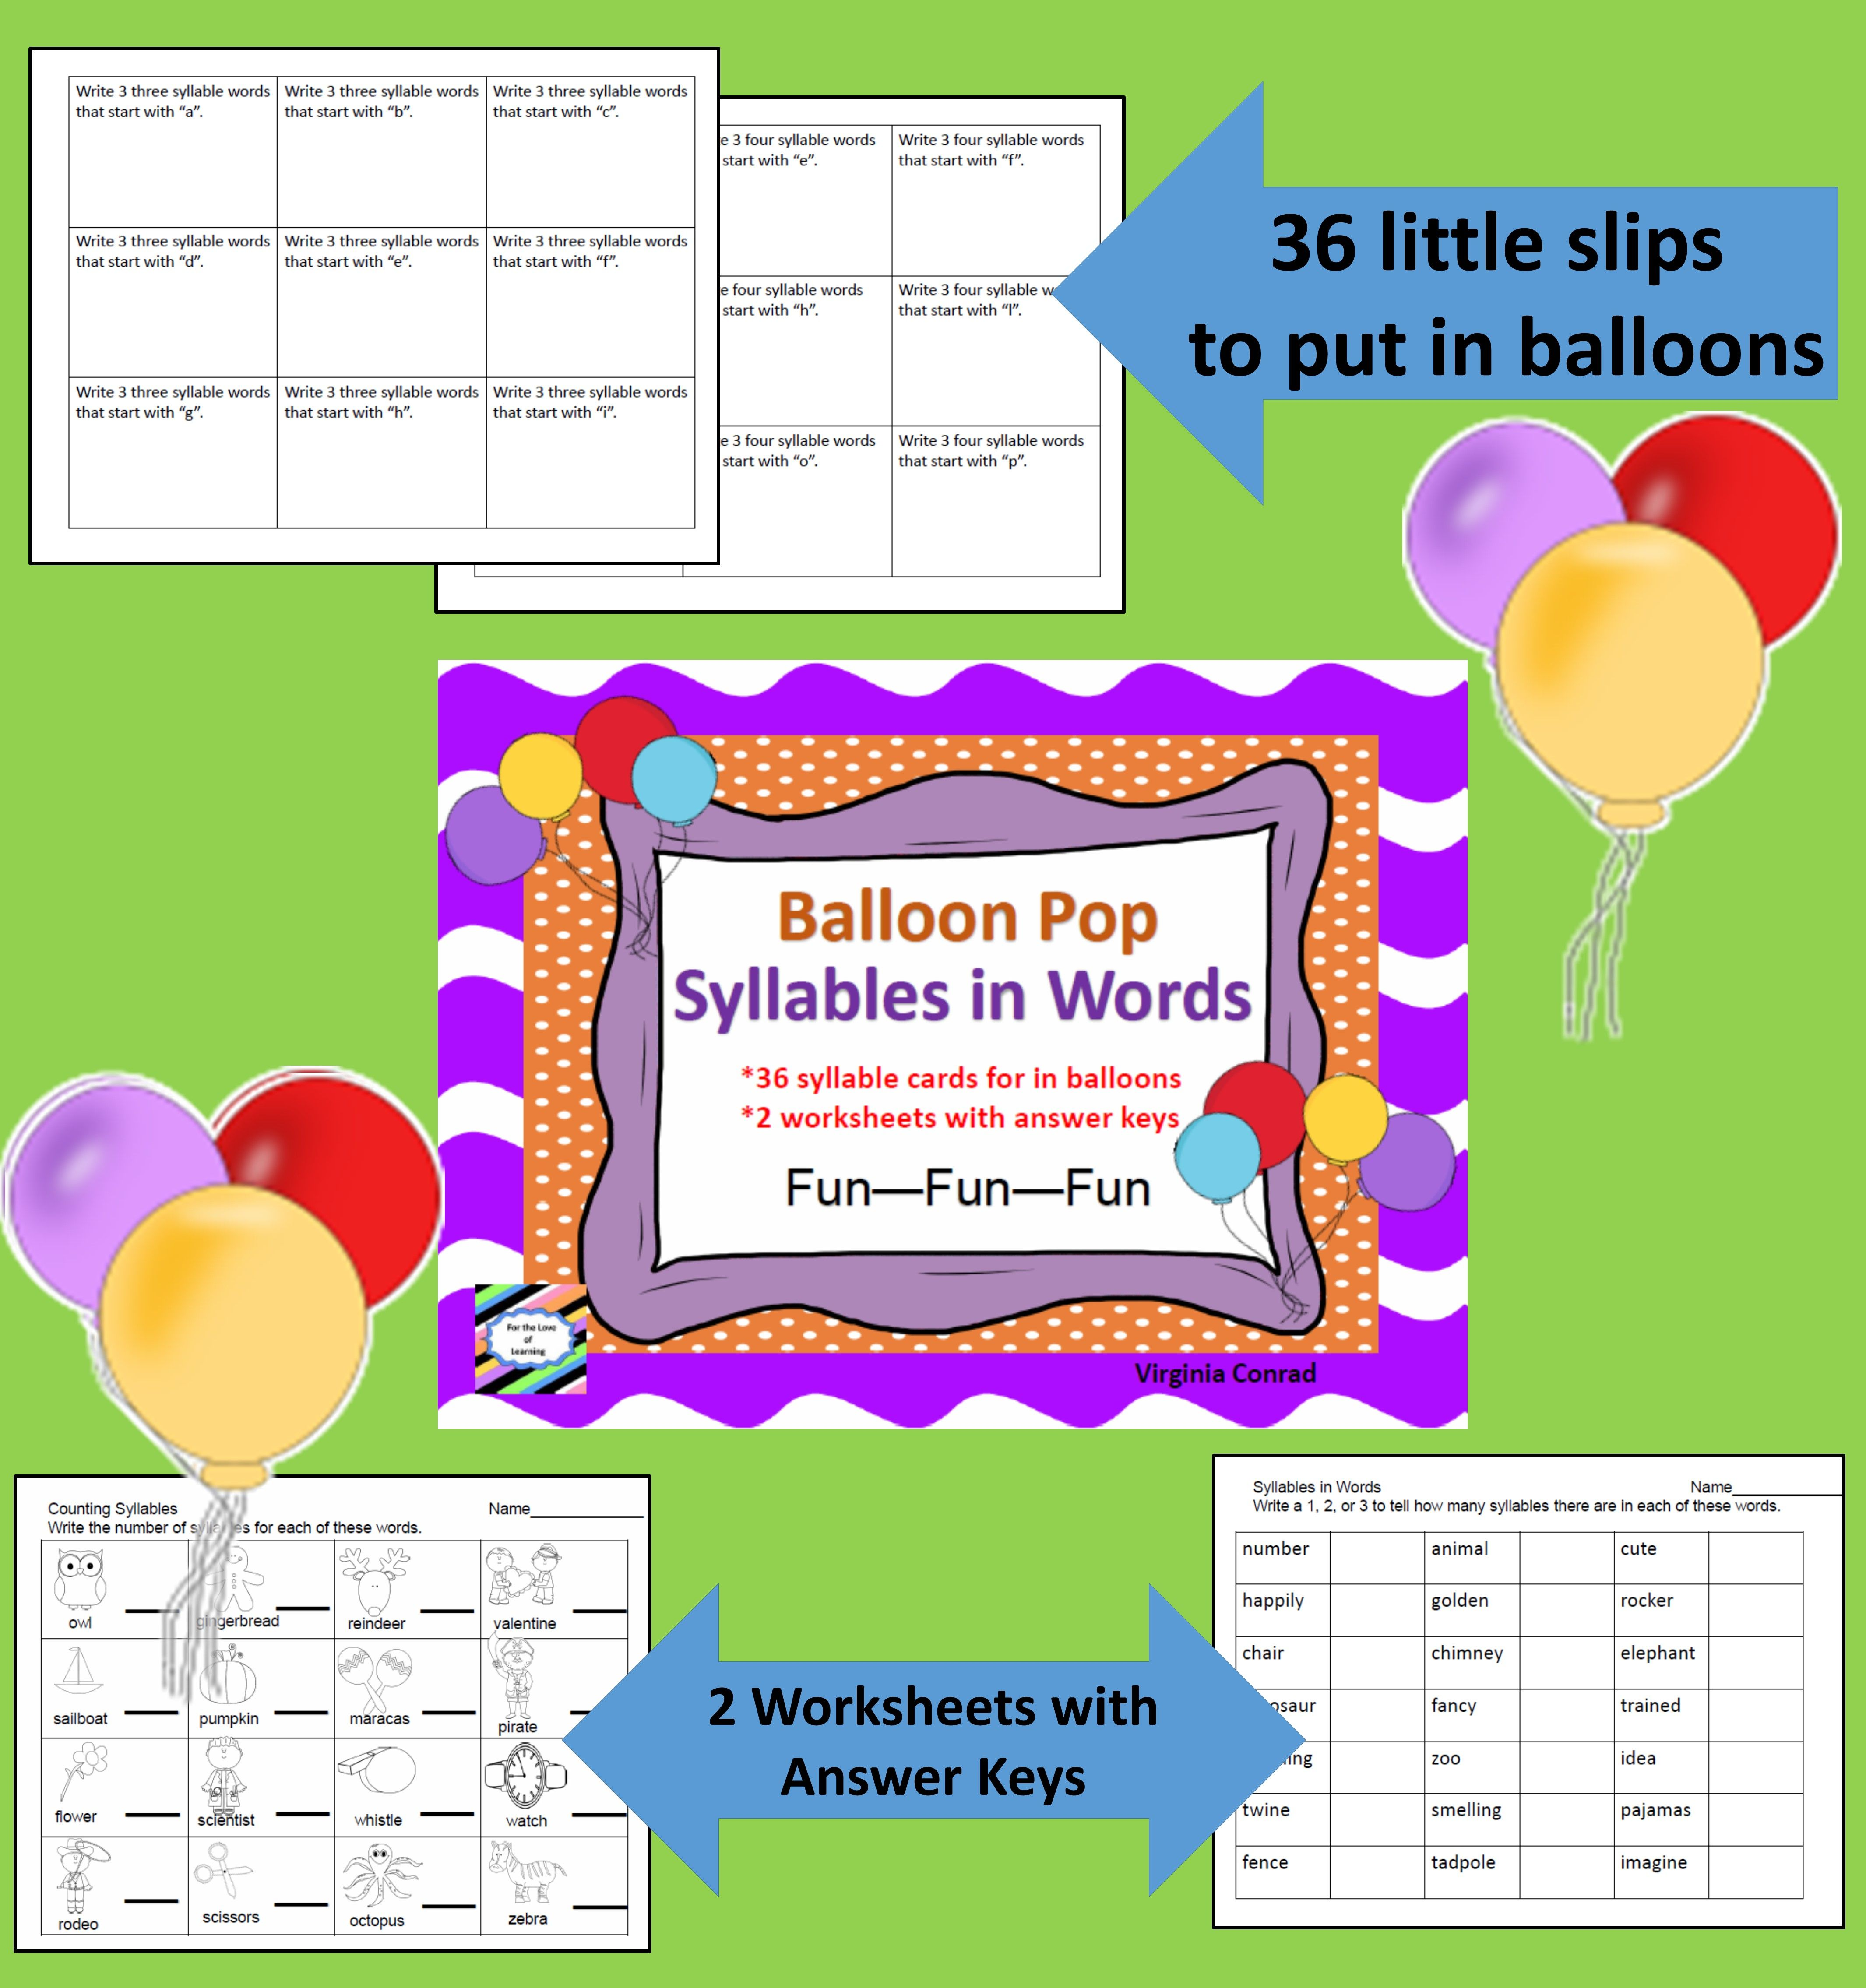 Counting Syllables Balloon Pop